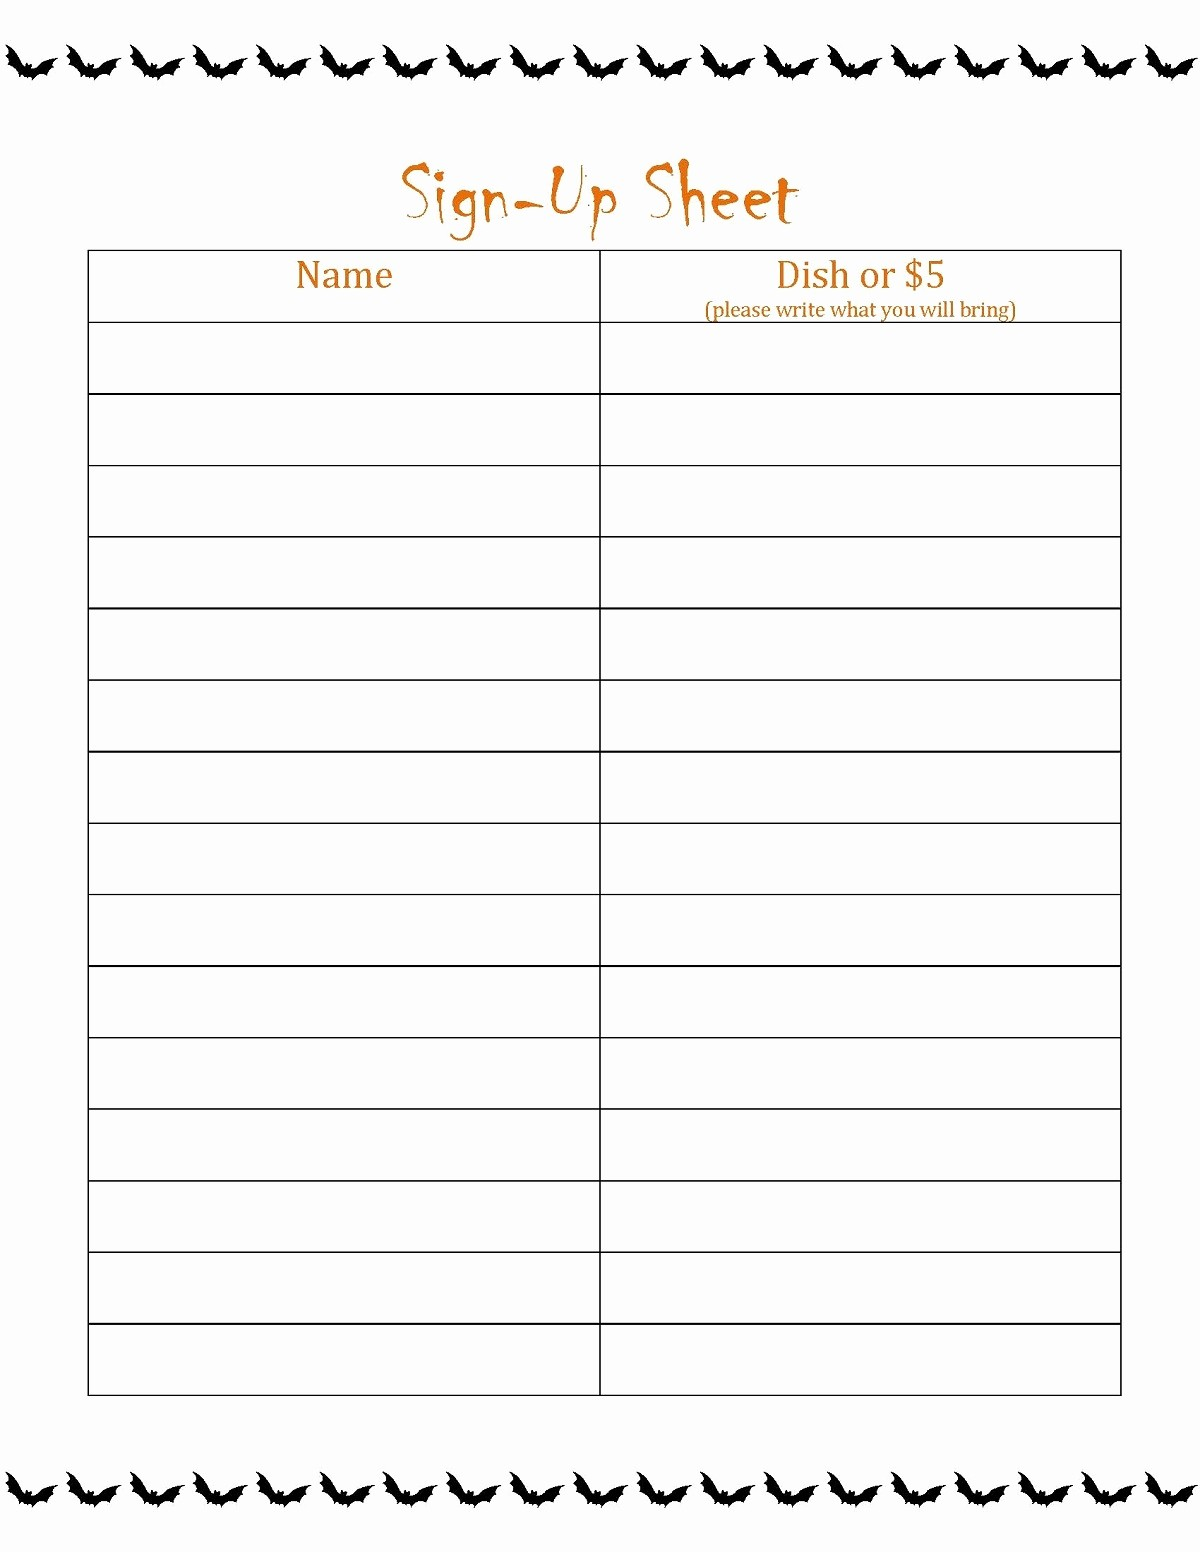 Party Food Sign Up Sheet Luxury Blank Sign Up Sheet Printable